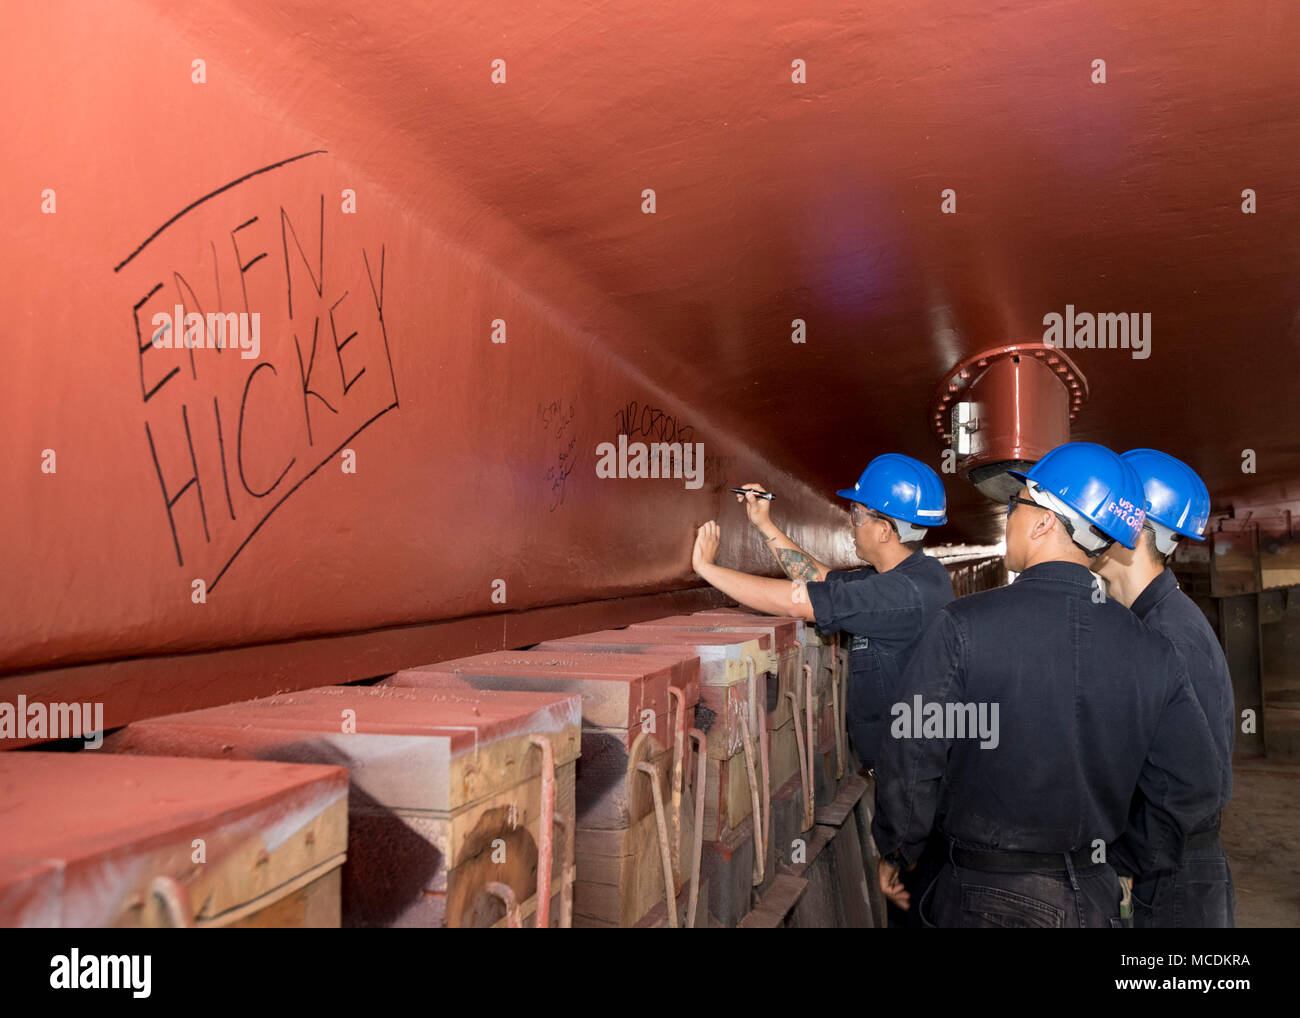 180221-N-XP344-032 MANAMA, Bahrain (Feb. 21, 2018) Sailors assigned to U.S. Navy mine countermeasures ship USS Dextrous (MCM 13) sign the ship's keel. Dextrous is a part of Naval Surface Squadron (CNSS) 5, which serves as the surface type commander's executive agent in Bahrain and provides support to 10 Cyclone-class coastal patrol ships and four Avenger-class mine countermeasures ships. (U.S. Navy photo by Mass Communication Specialist 2nd Class Victoria Kinney/Released) - Stock Image